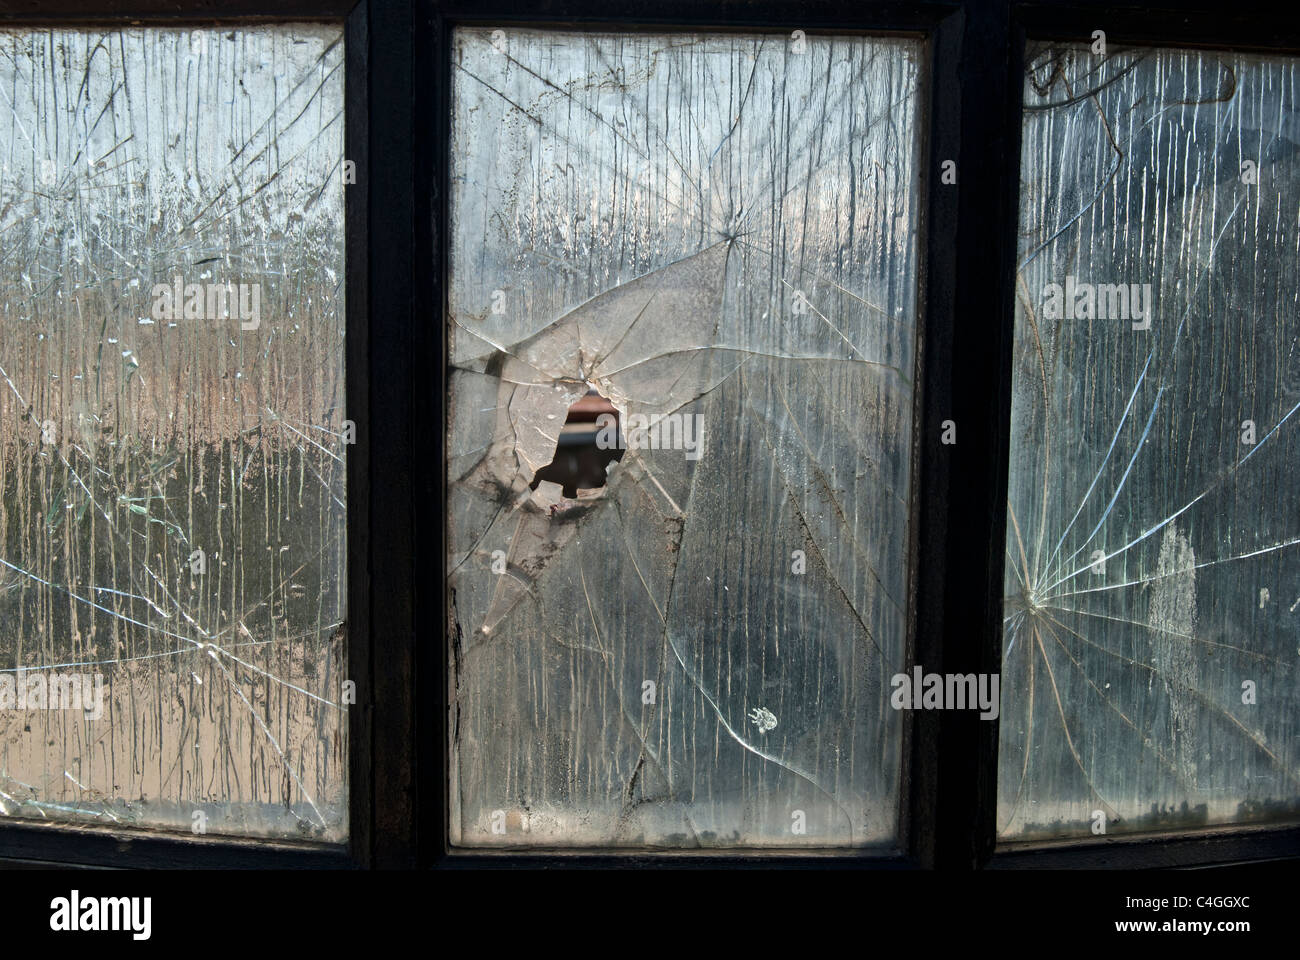 BROKEN WINDOW GLASS - Stock Image